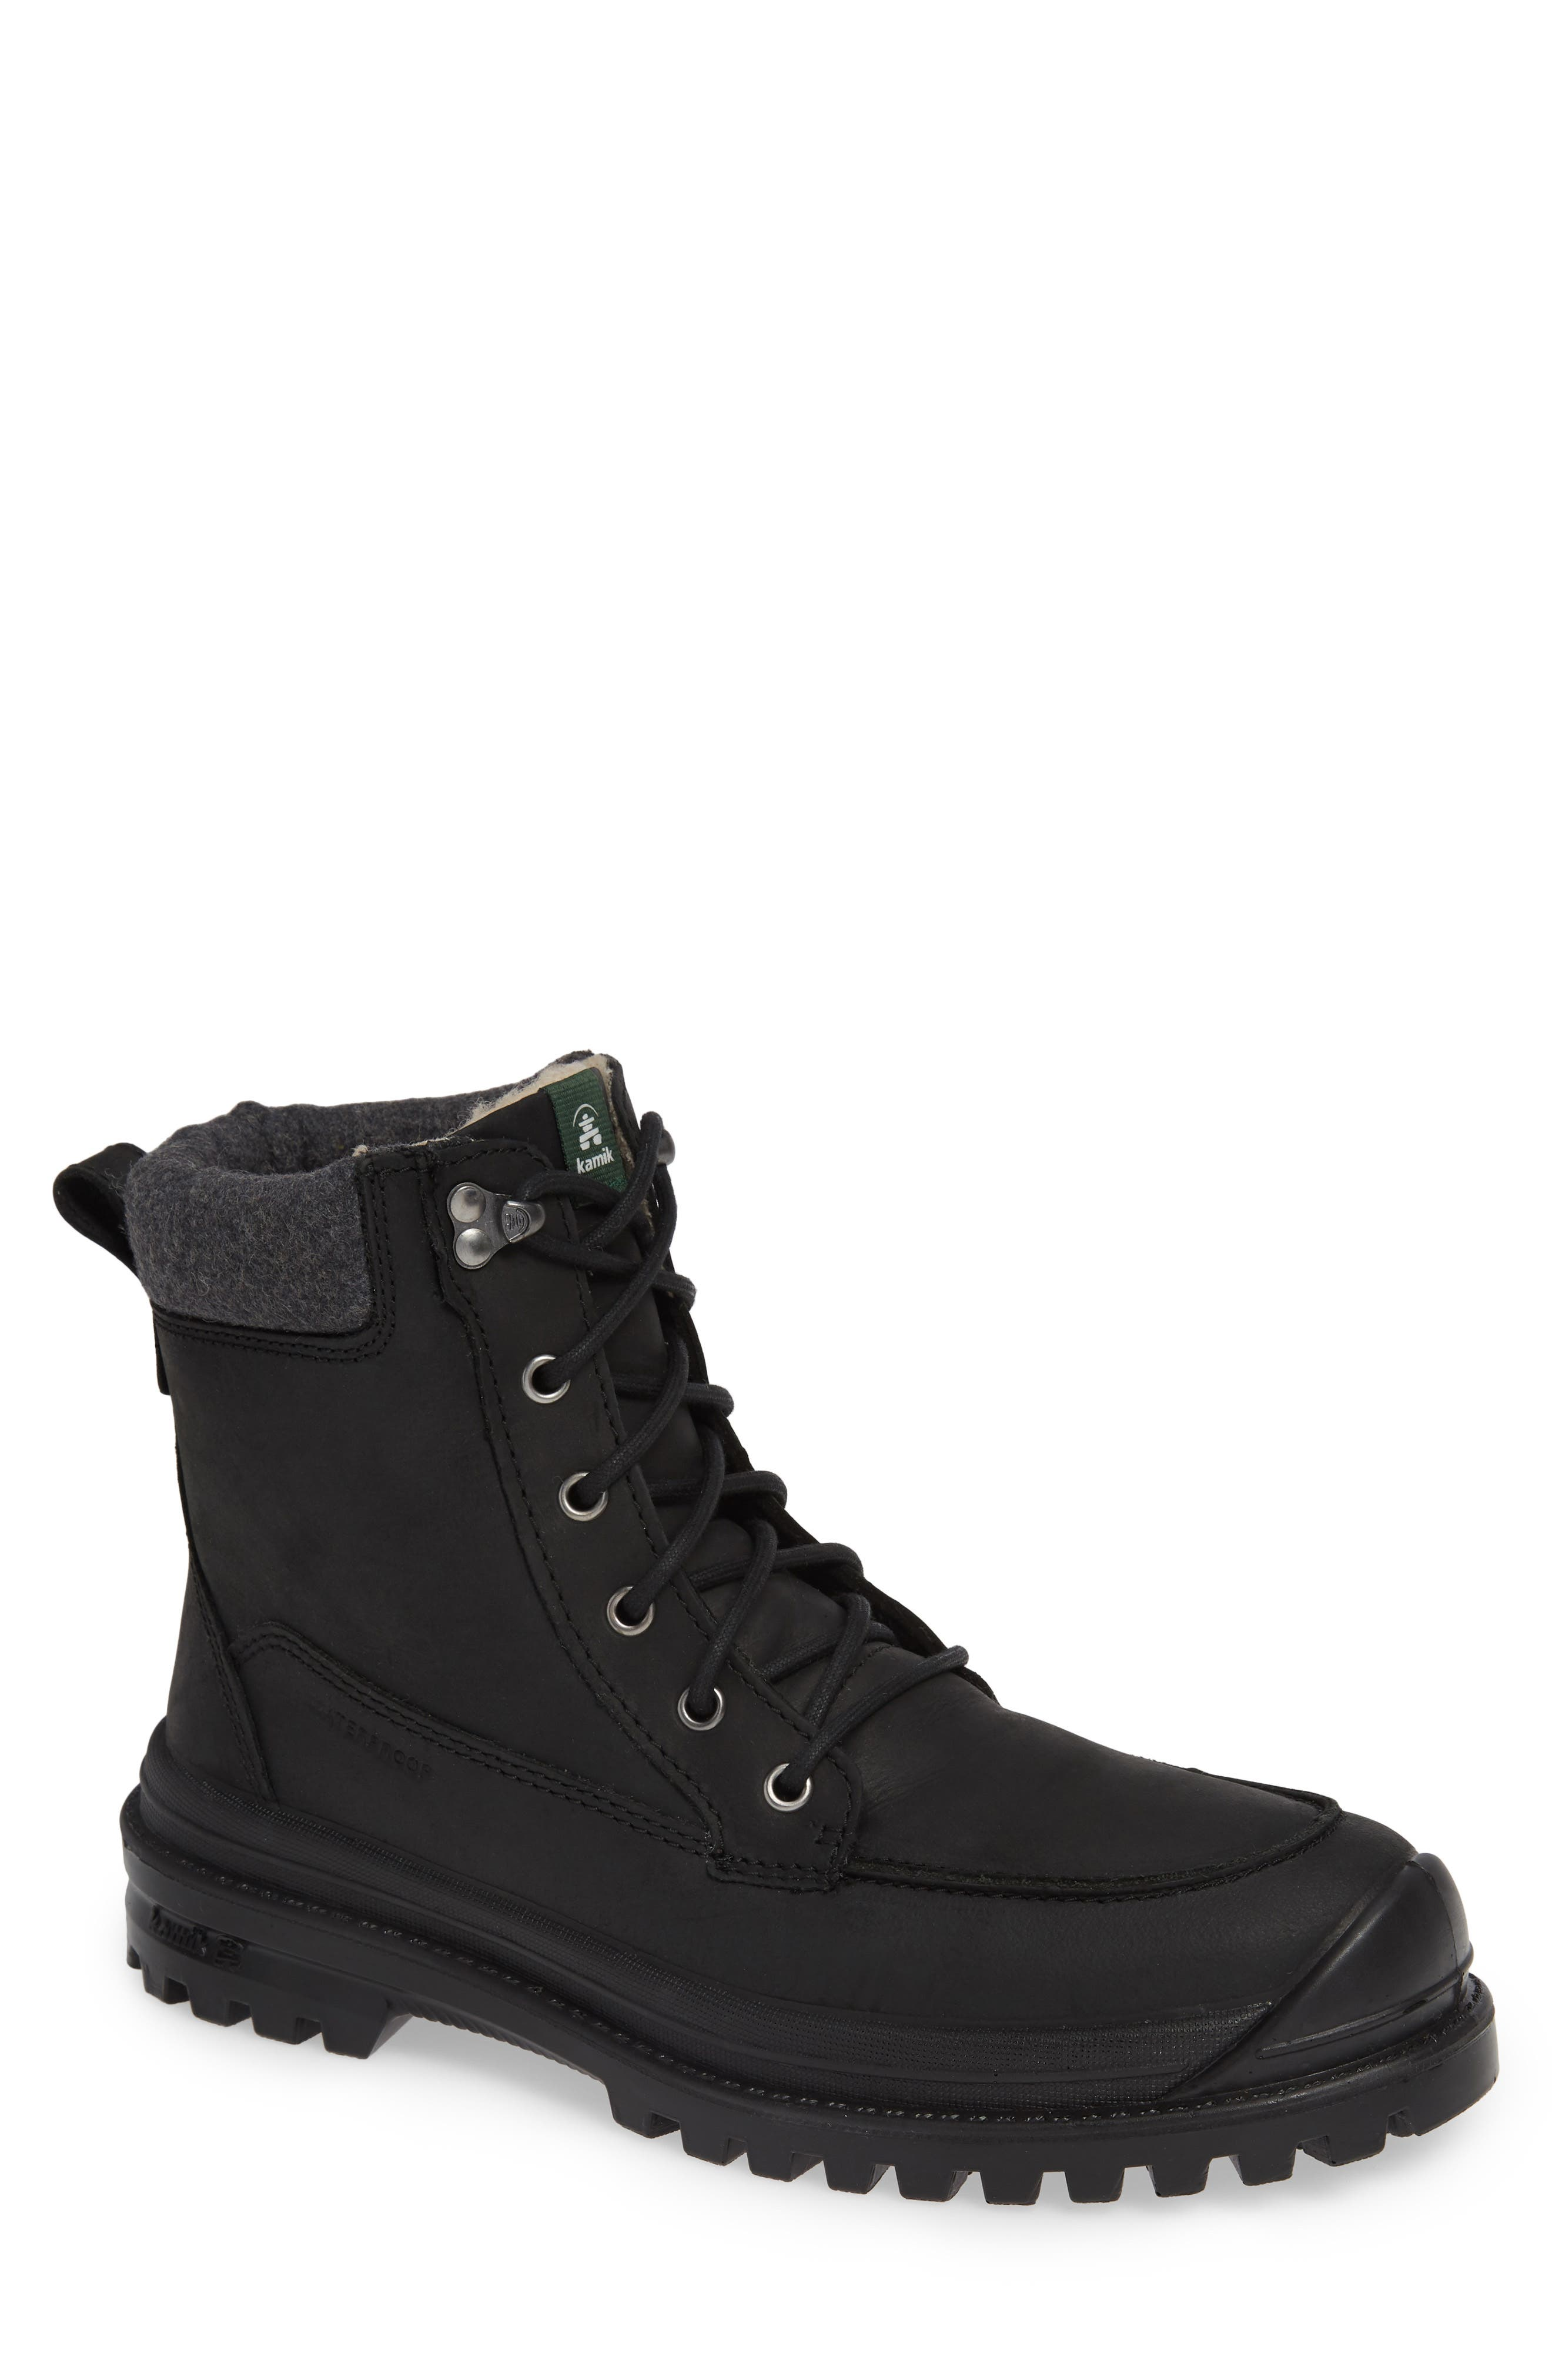 Griffon2 Snow Waterproof Boot with Faux Shearling,                             Main thumbnail 1, color,                             BLACK/ BLACK LEATHER